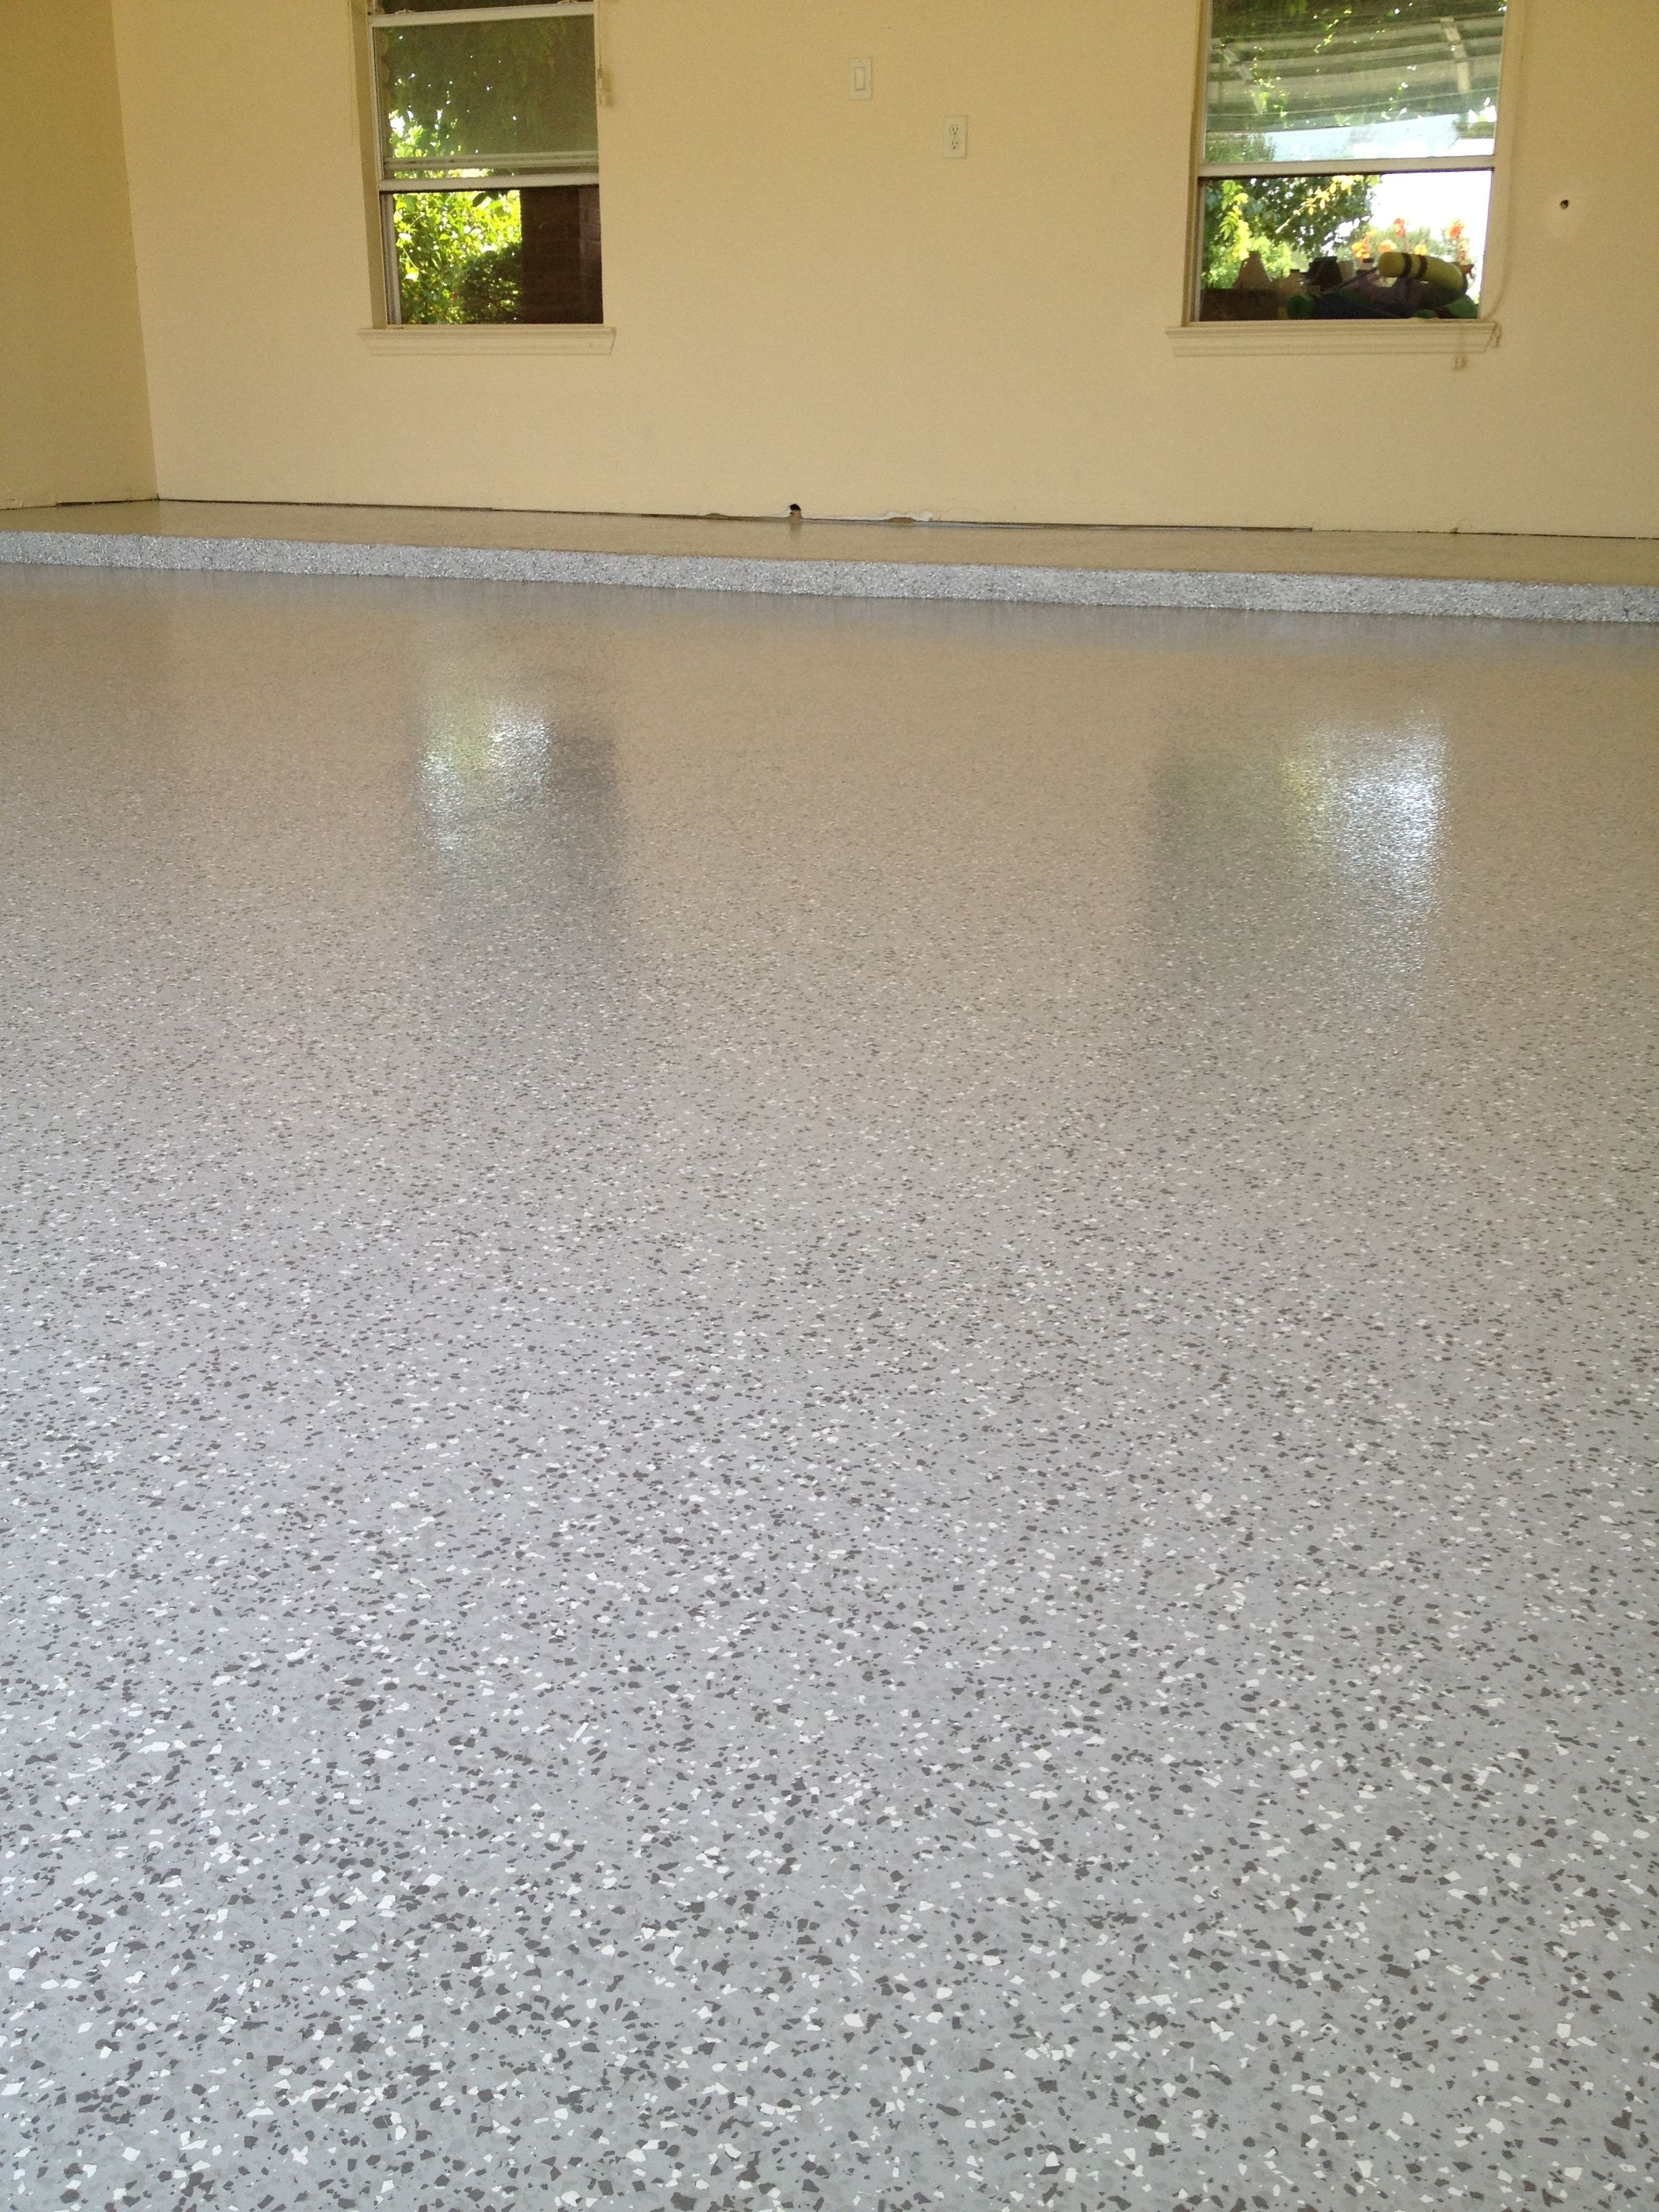 1 4 Gray Flake Blend Medium Broadcast On Whisper Gray Epoxy Vapor Barrier Finished With One Coat Of Clear Polyuret Garage Floor Paint Epoxy Floor Garage Floor